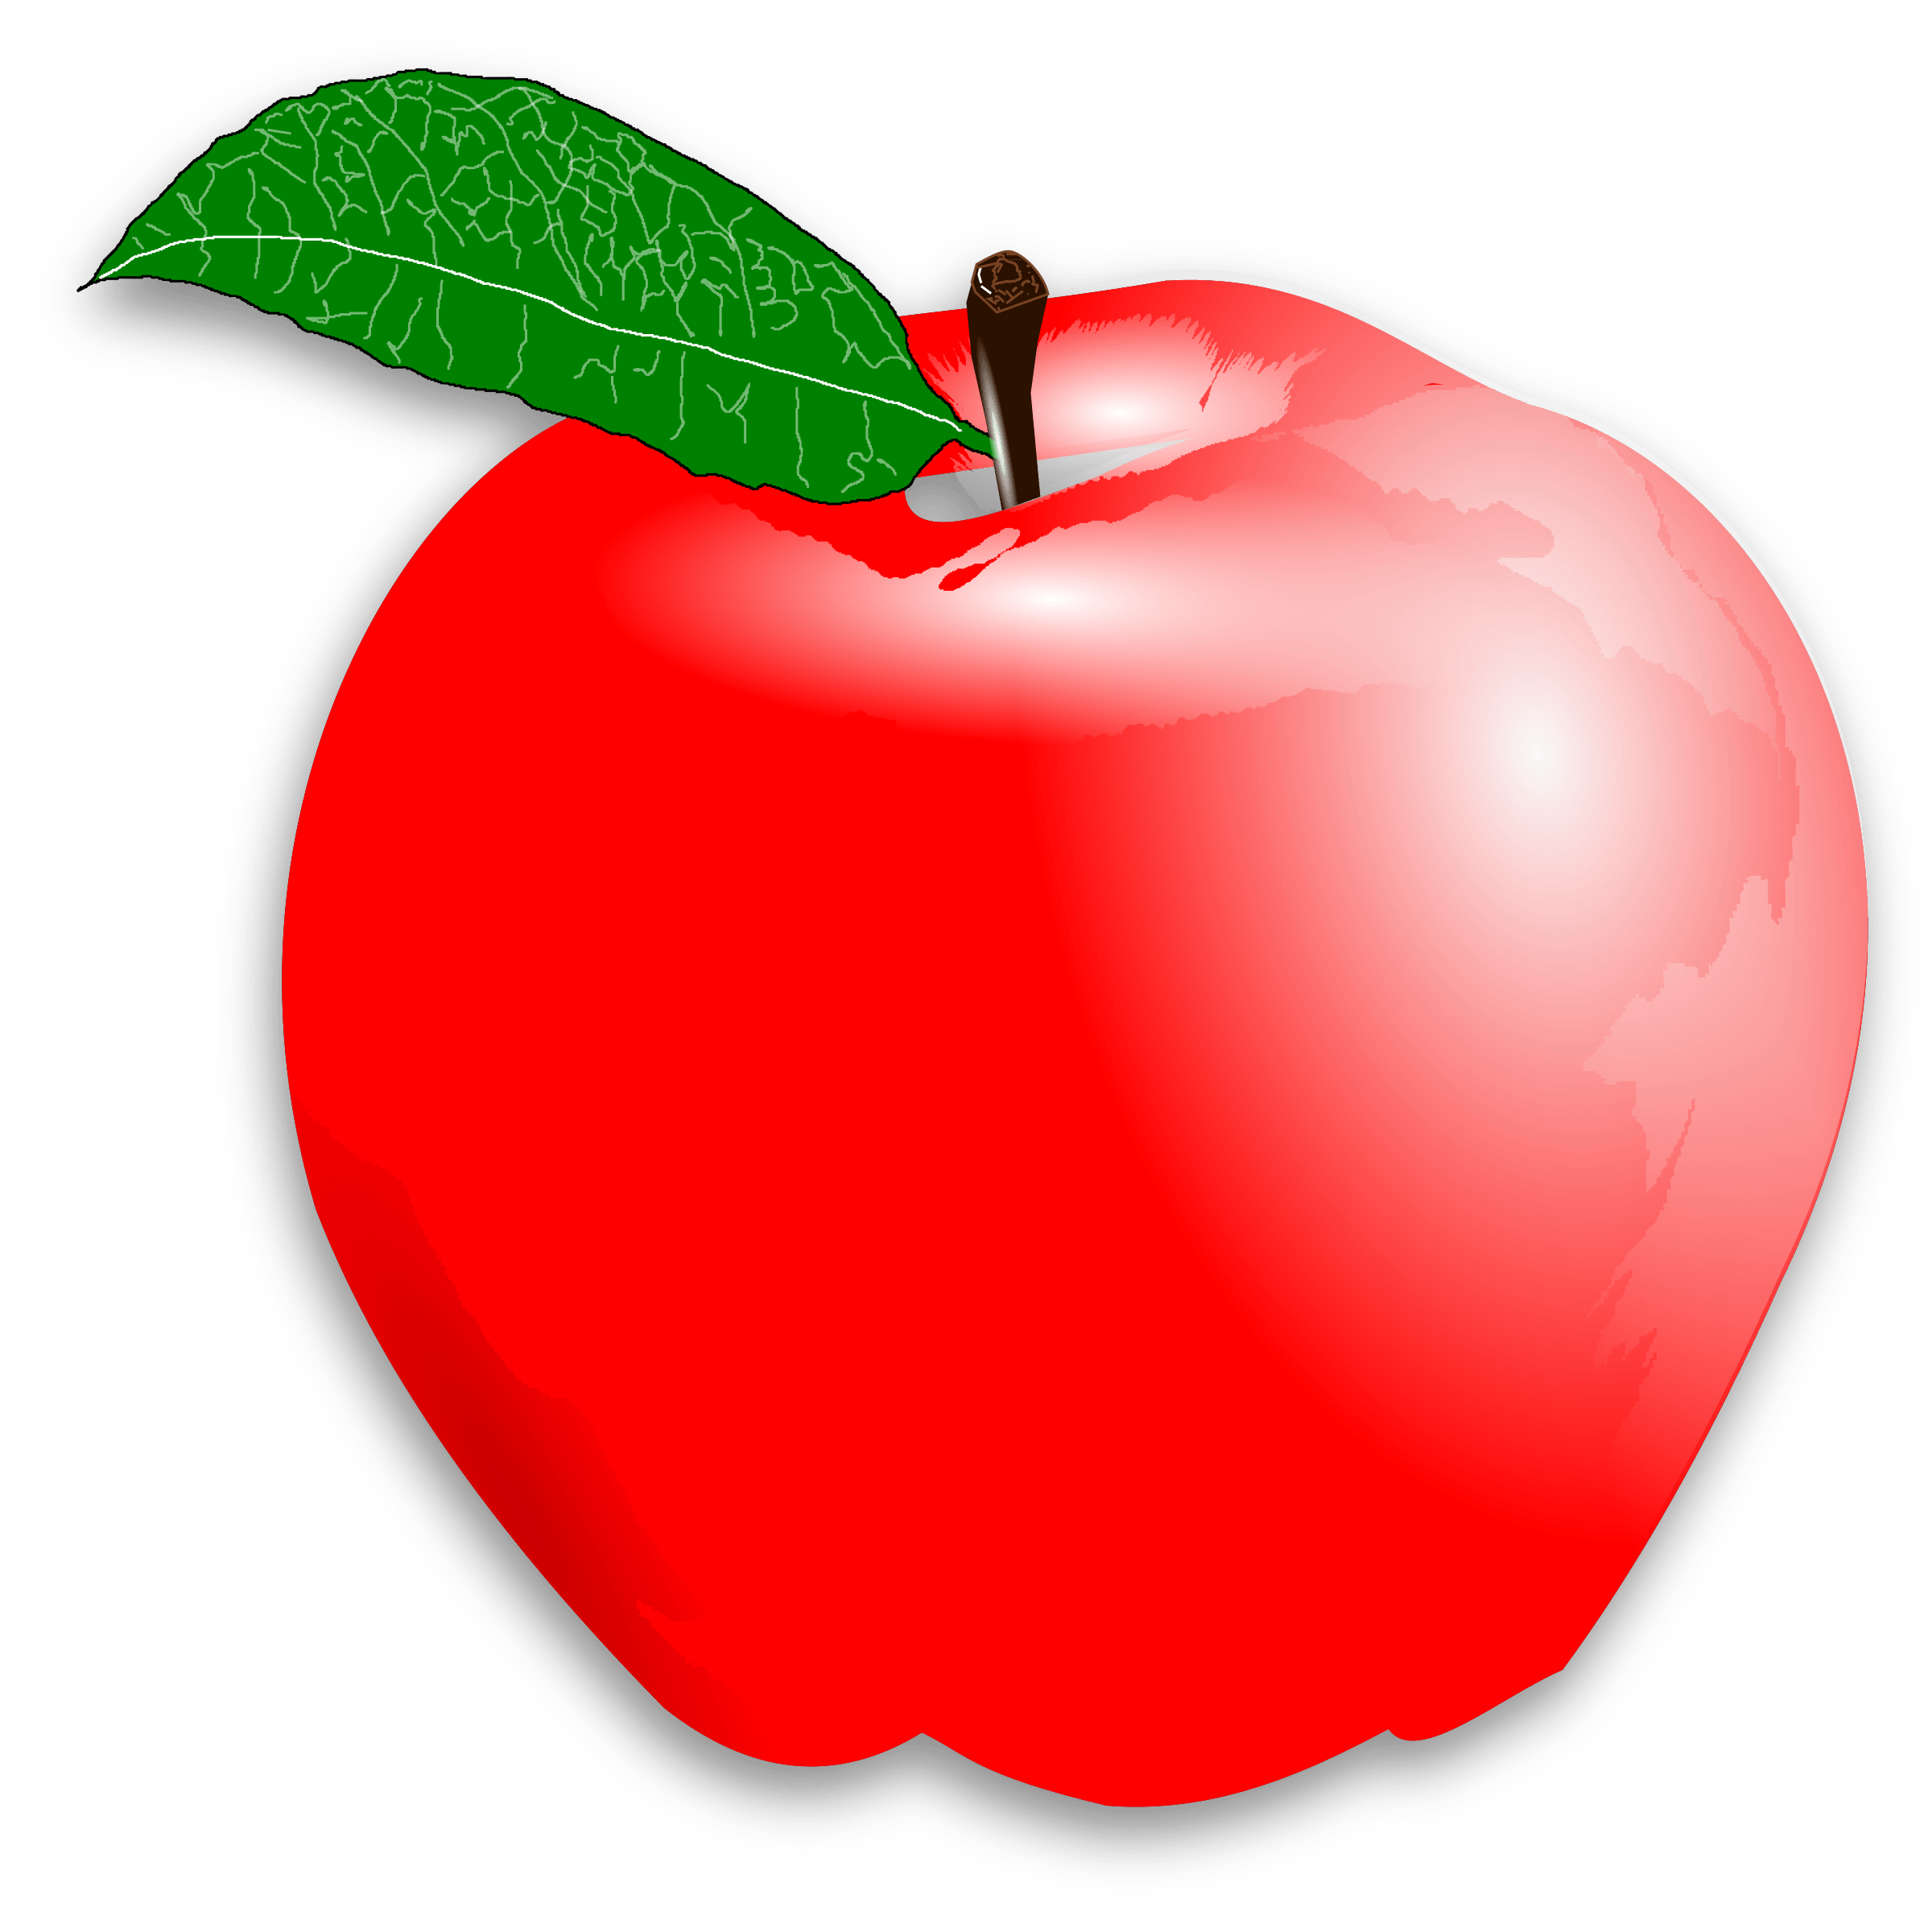 Apple word clipart graphic royalty free Microsoft Apple Cliparts - Cliparts Zone graphic royalty free